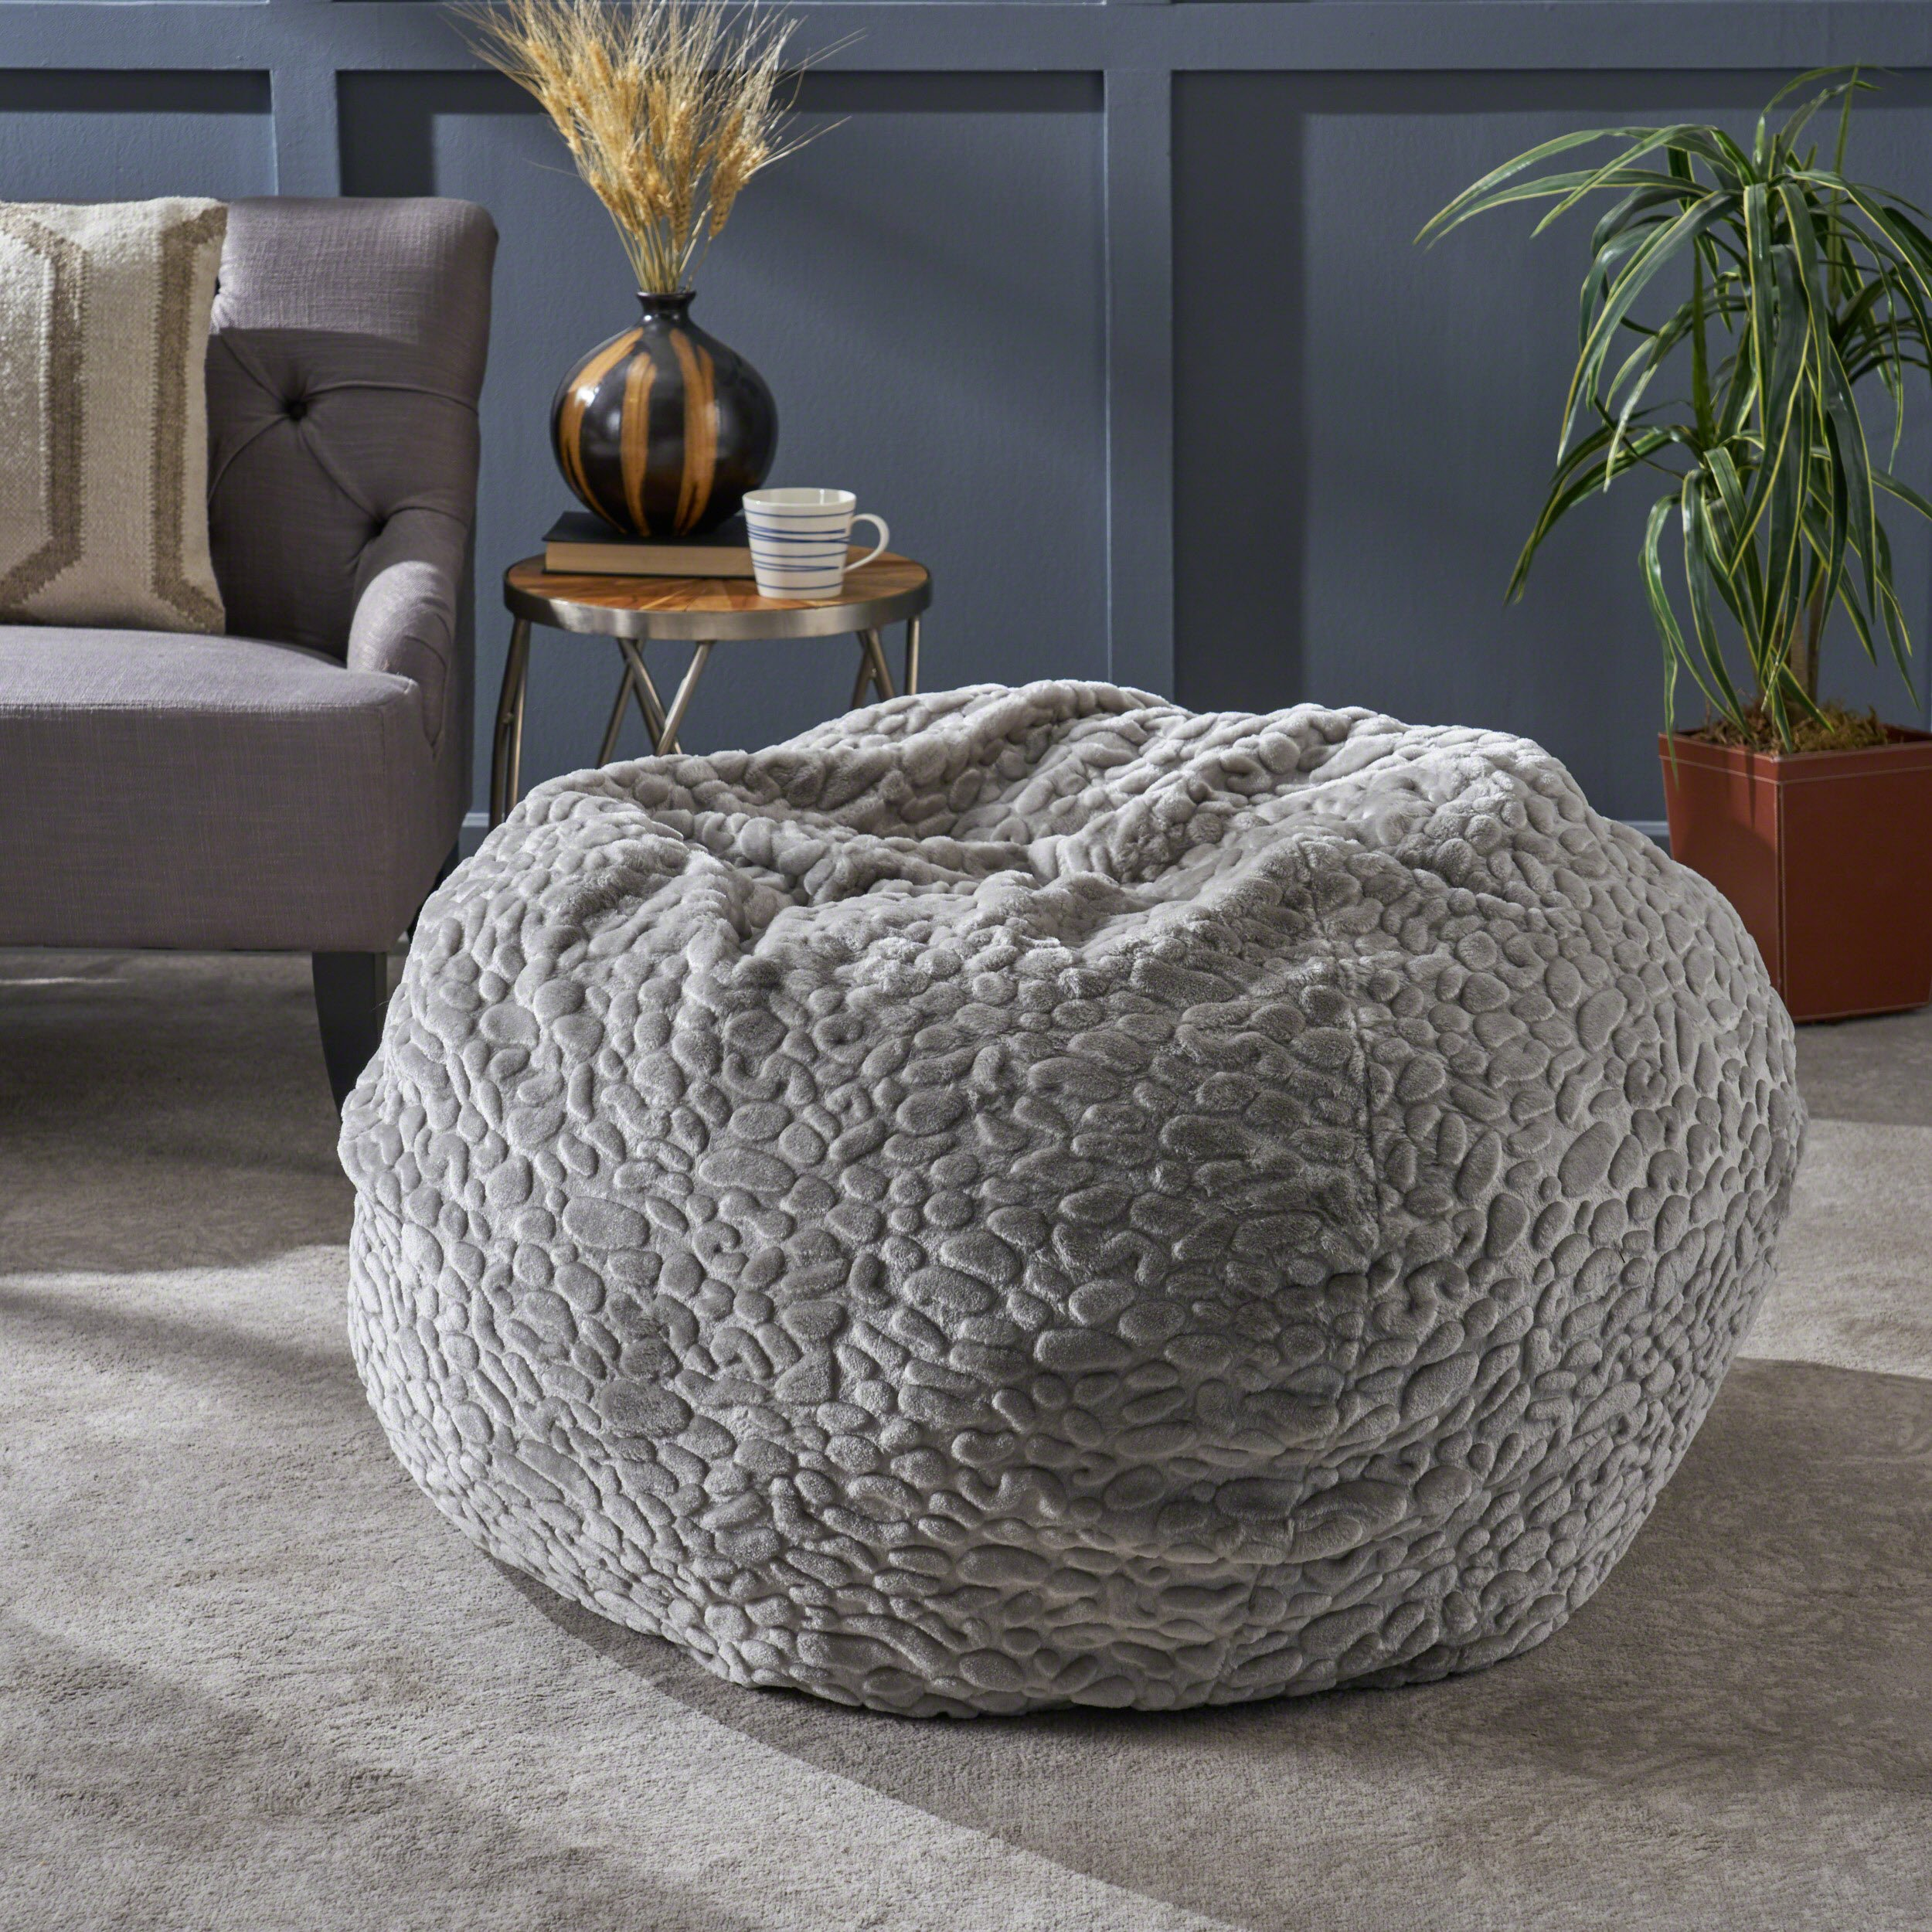 Christopher Knight Home Laraine Furry Glam Grey Pebble Pattern Faux Fur 3 Ft. Bean Bag by Christopher Knight Home